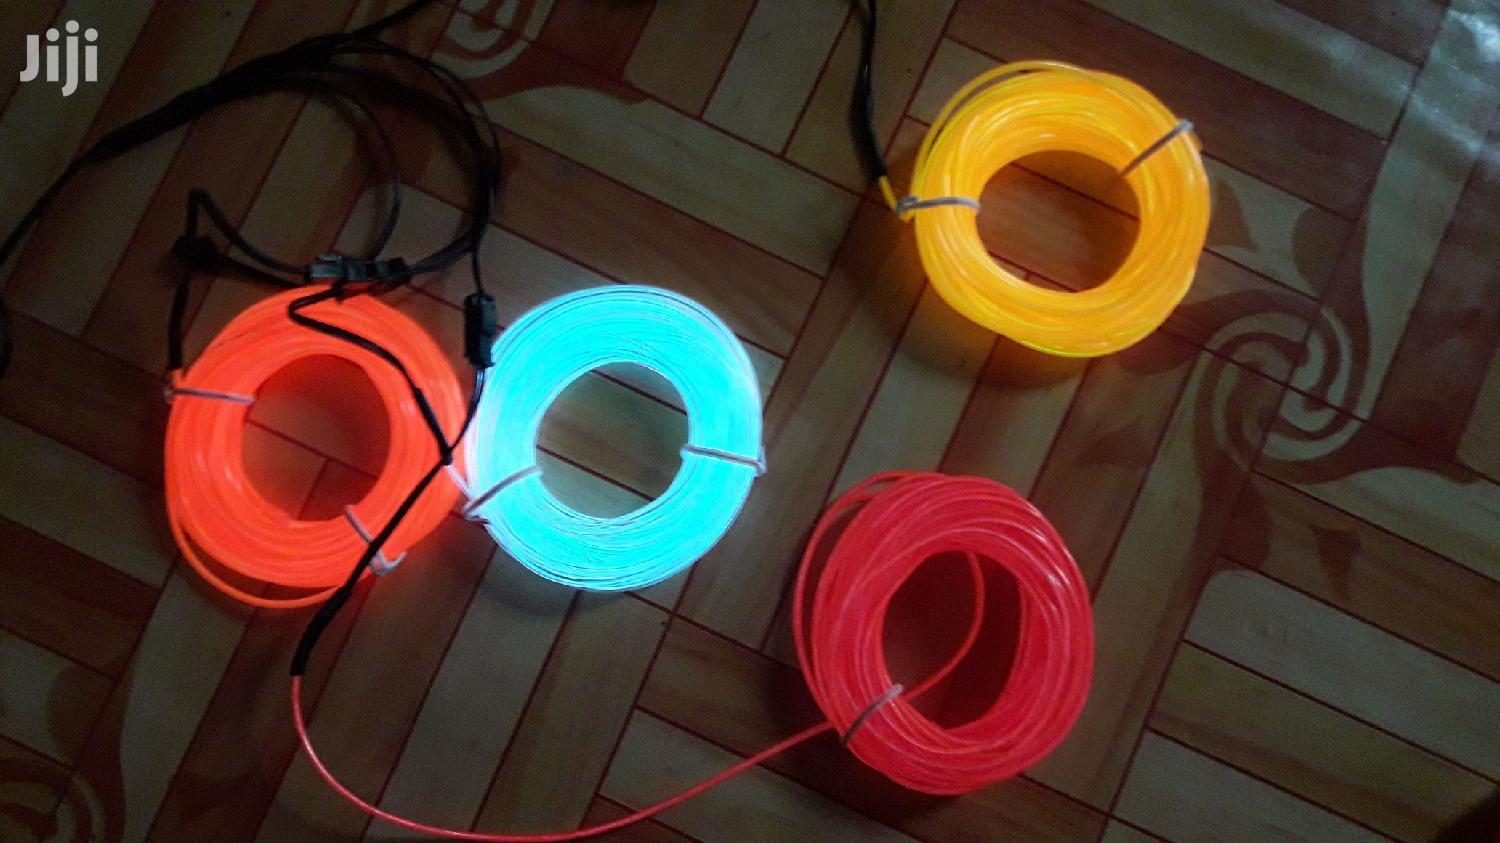 230 Volts LED Design Light | Home Accessories for sale in Tema Metropolitan, Greater Accra, Ghana